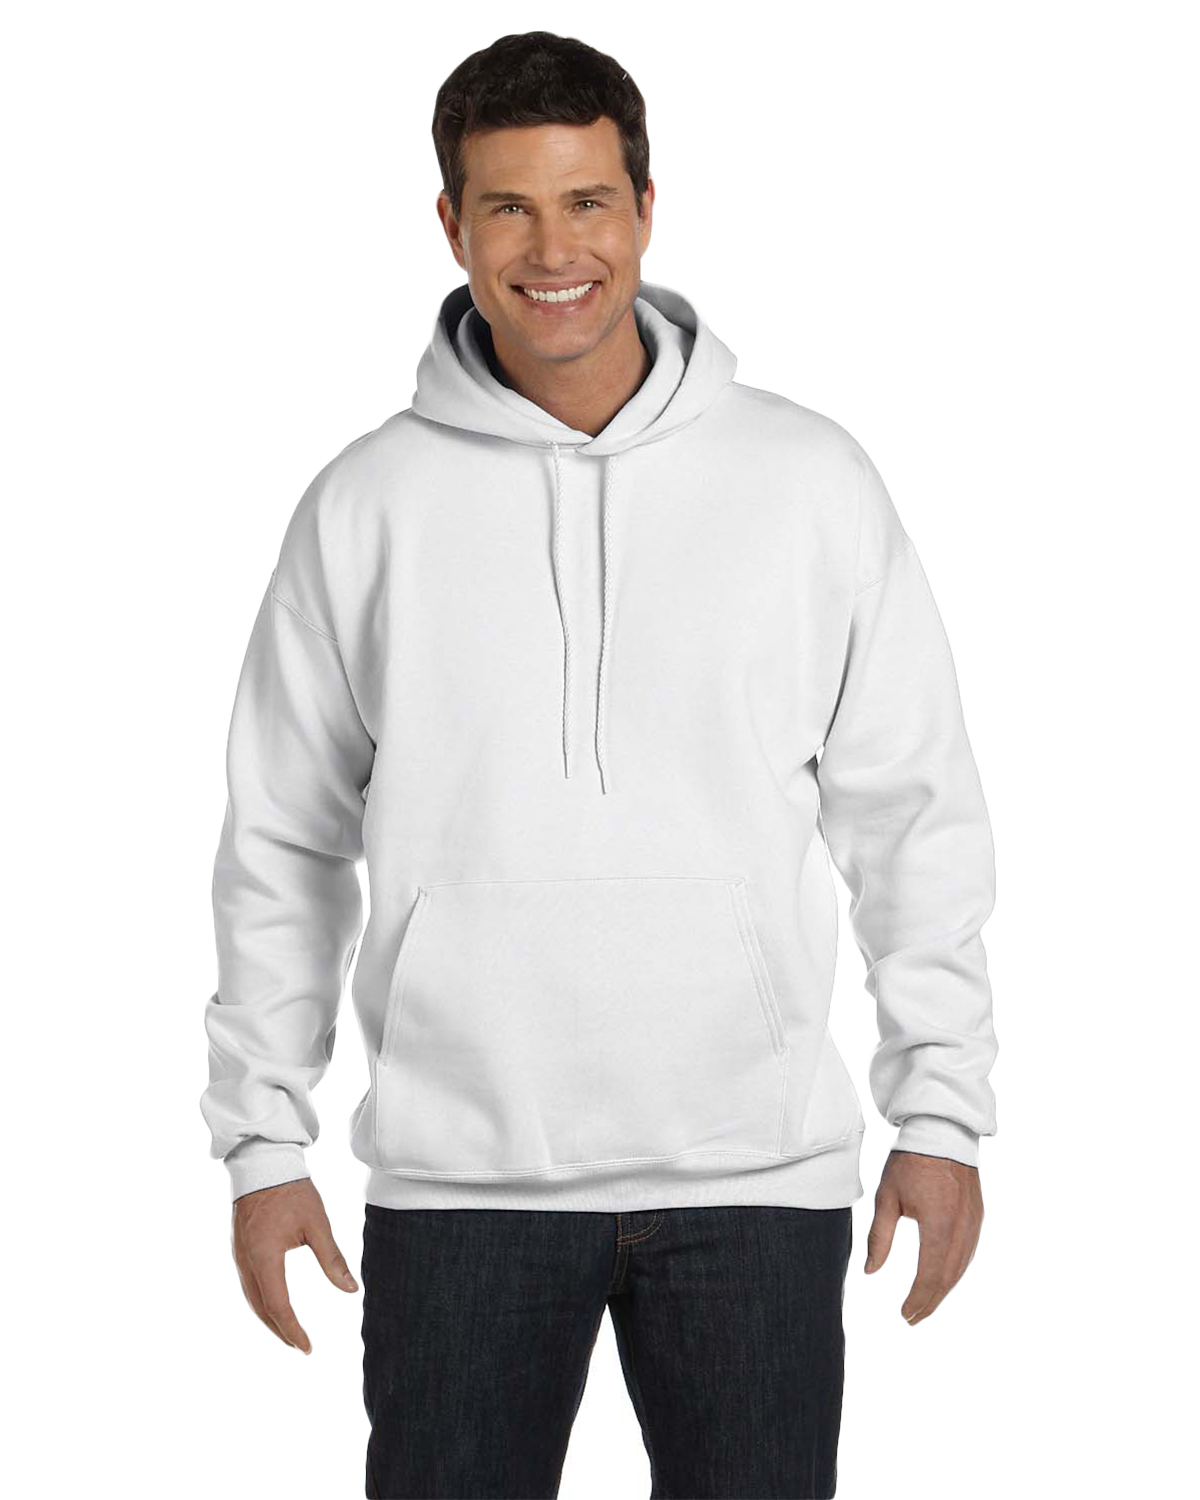 Hanes F170 Men 9.7 oz. Ultimate Cotton 90/10 Pullover Hood White at GotApparel